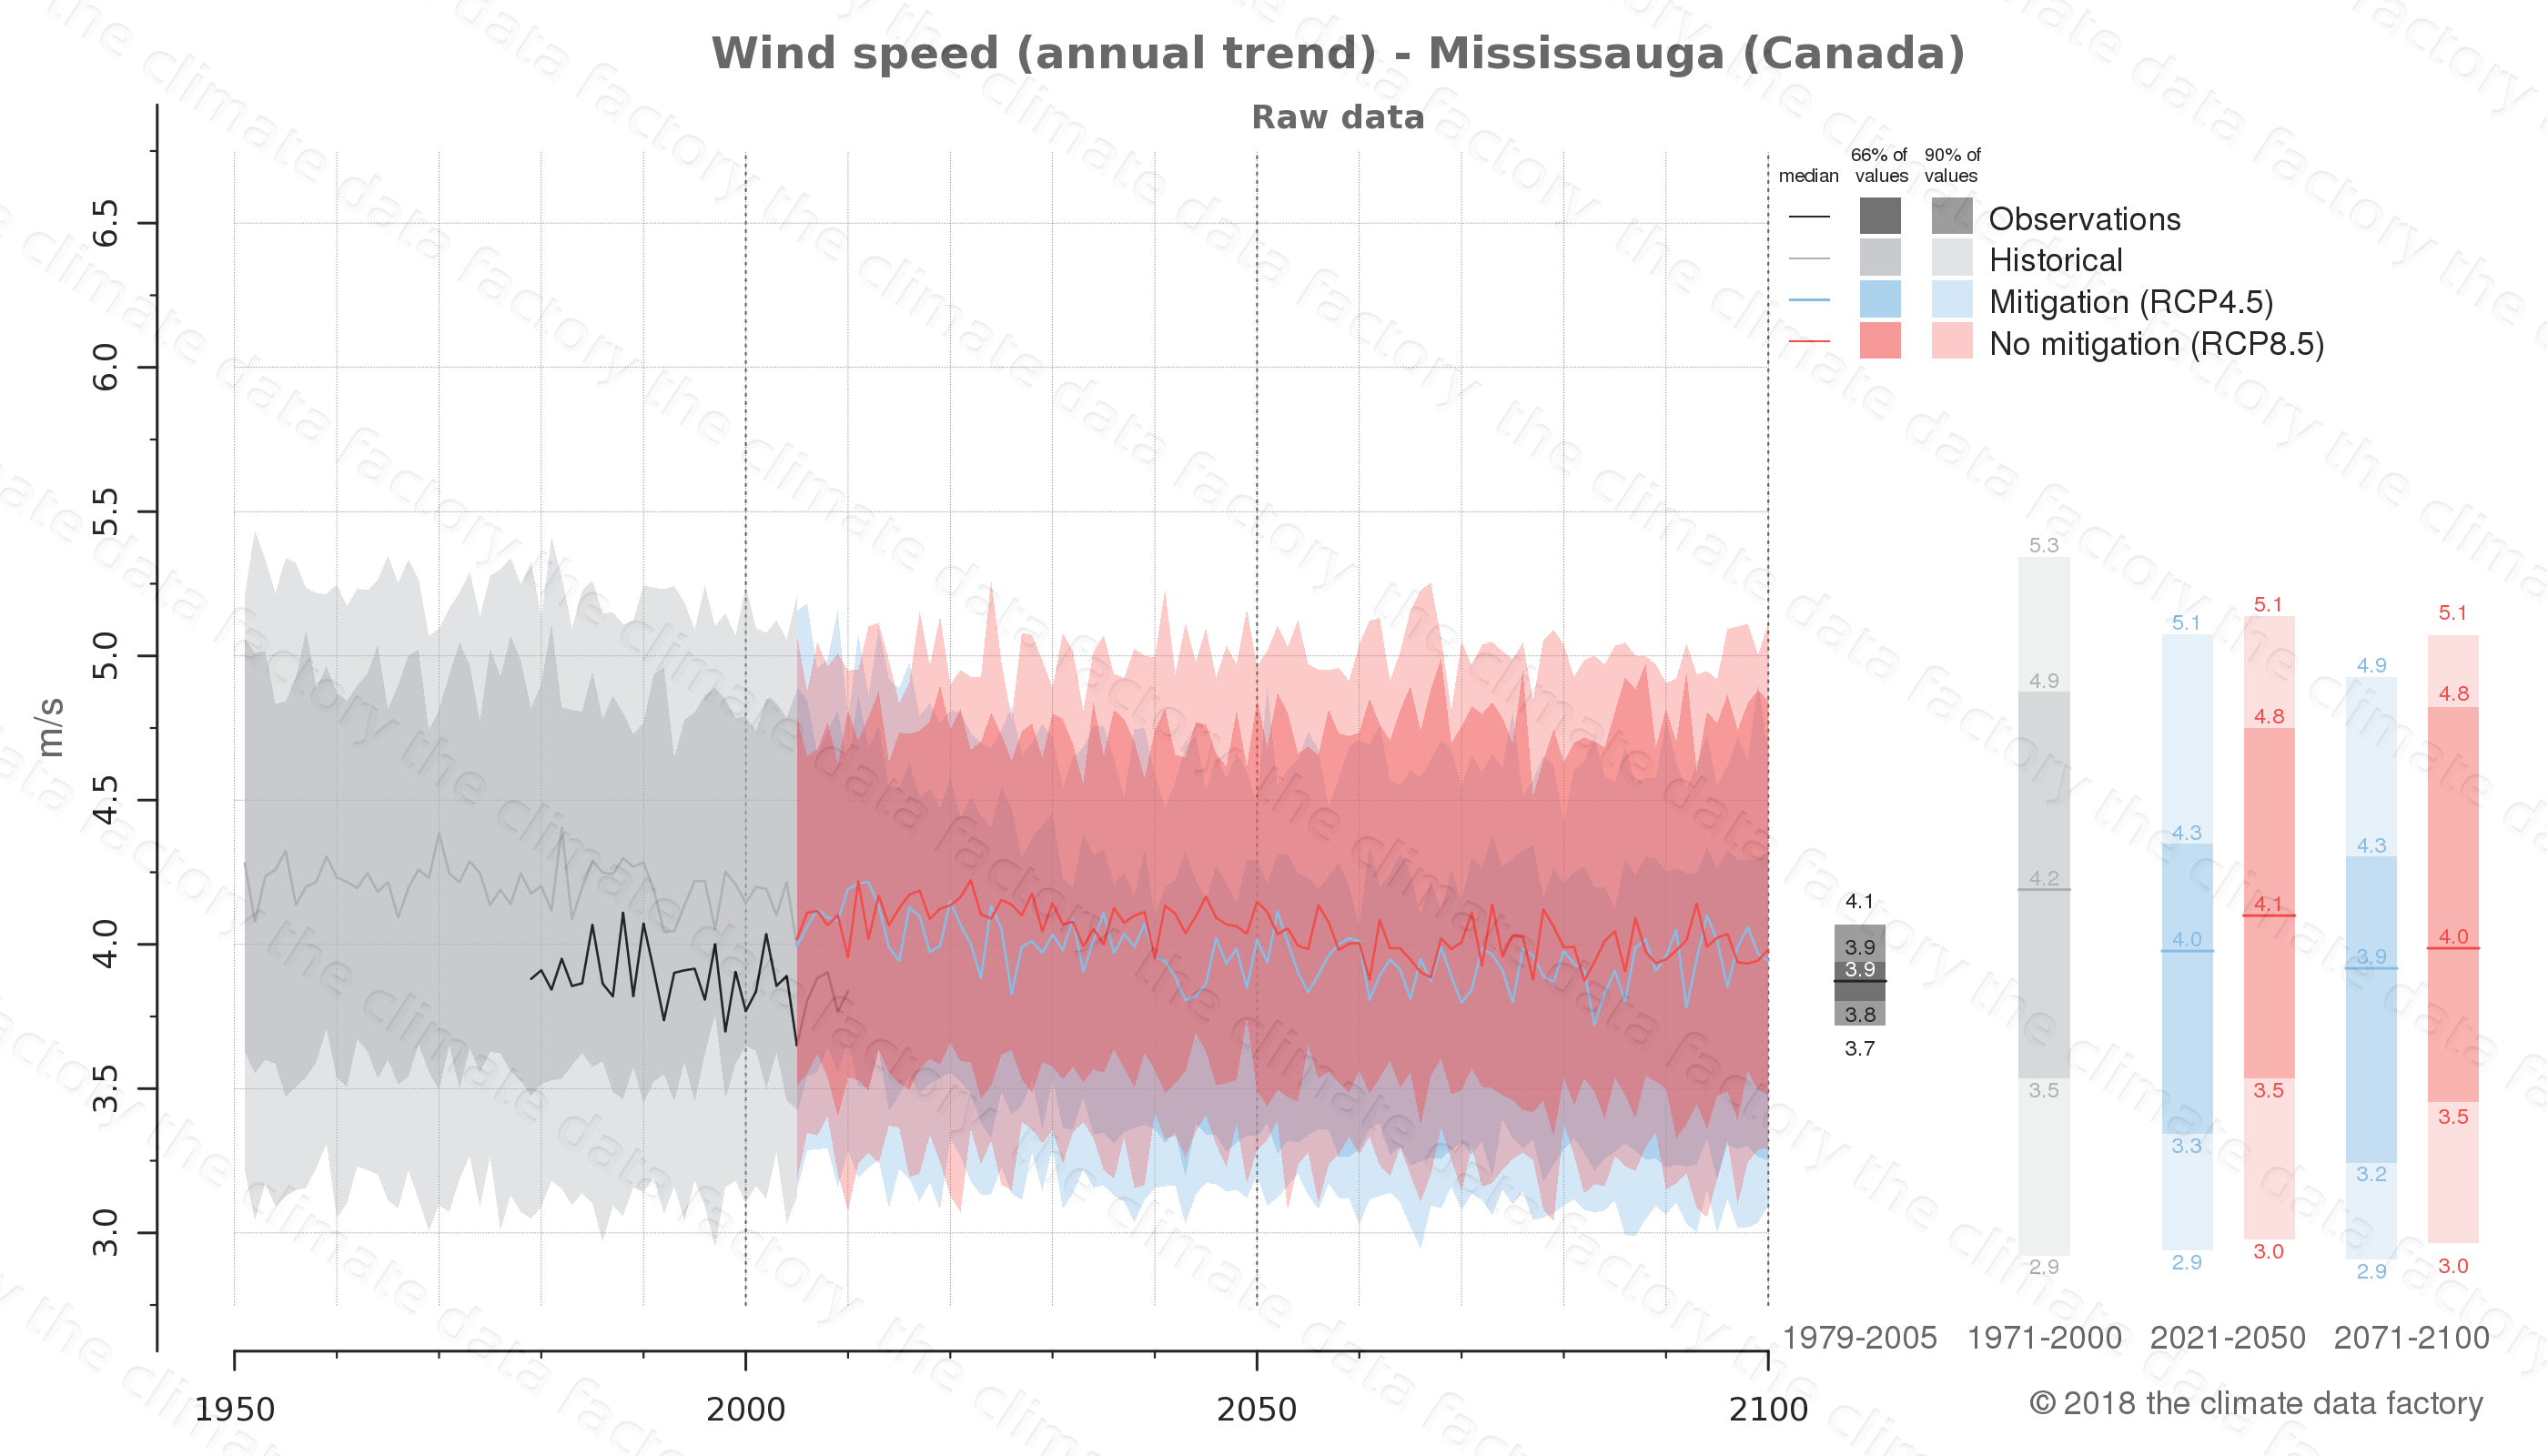 climate change data policy adaptation climate graph city data wind-speed mississauga canada